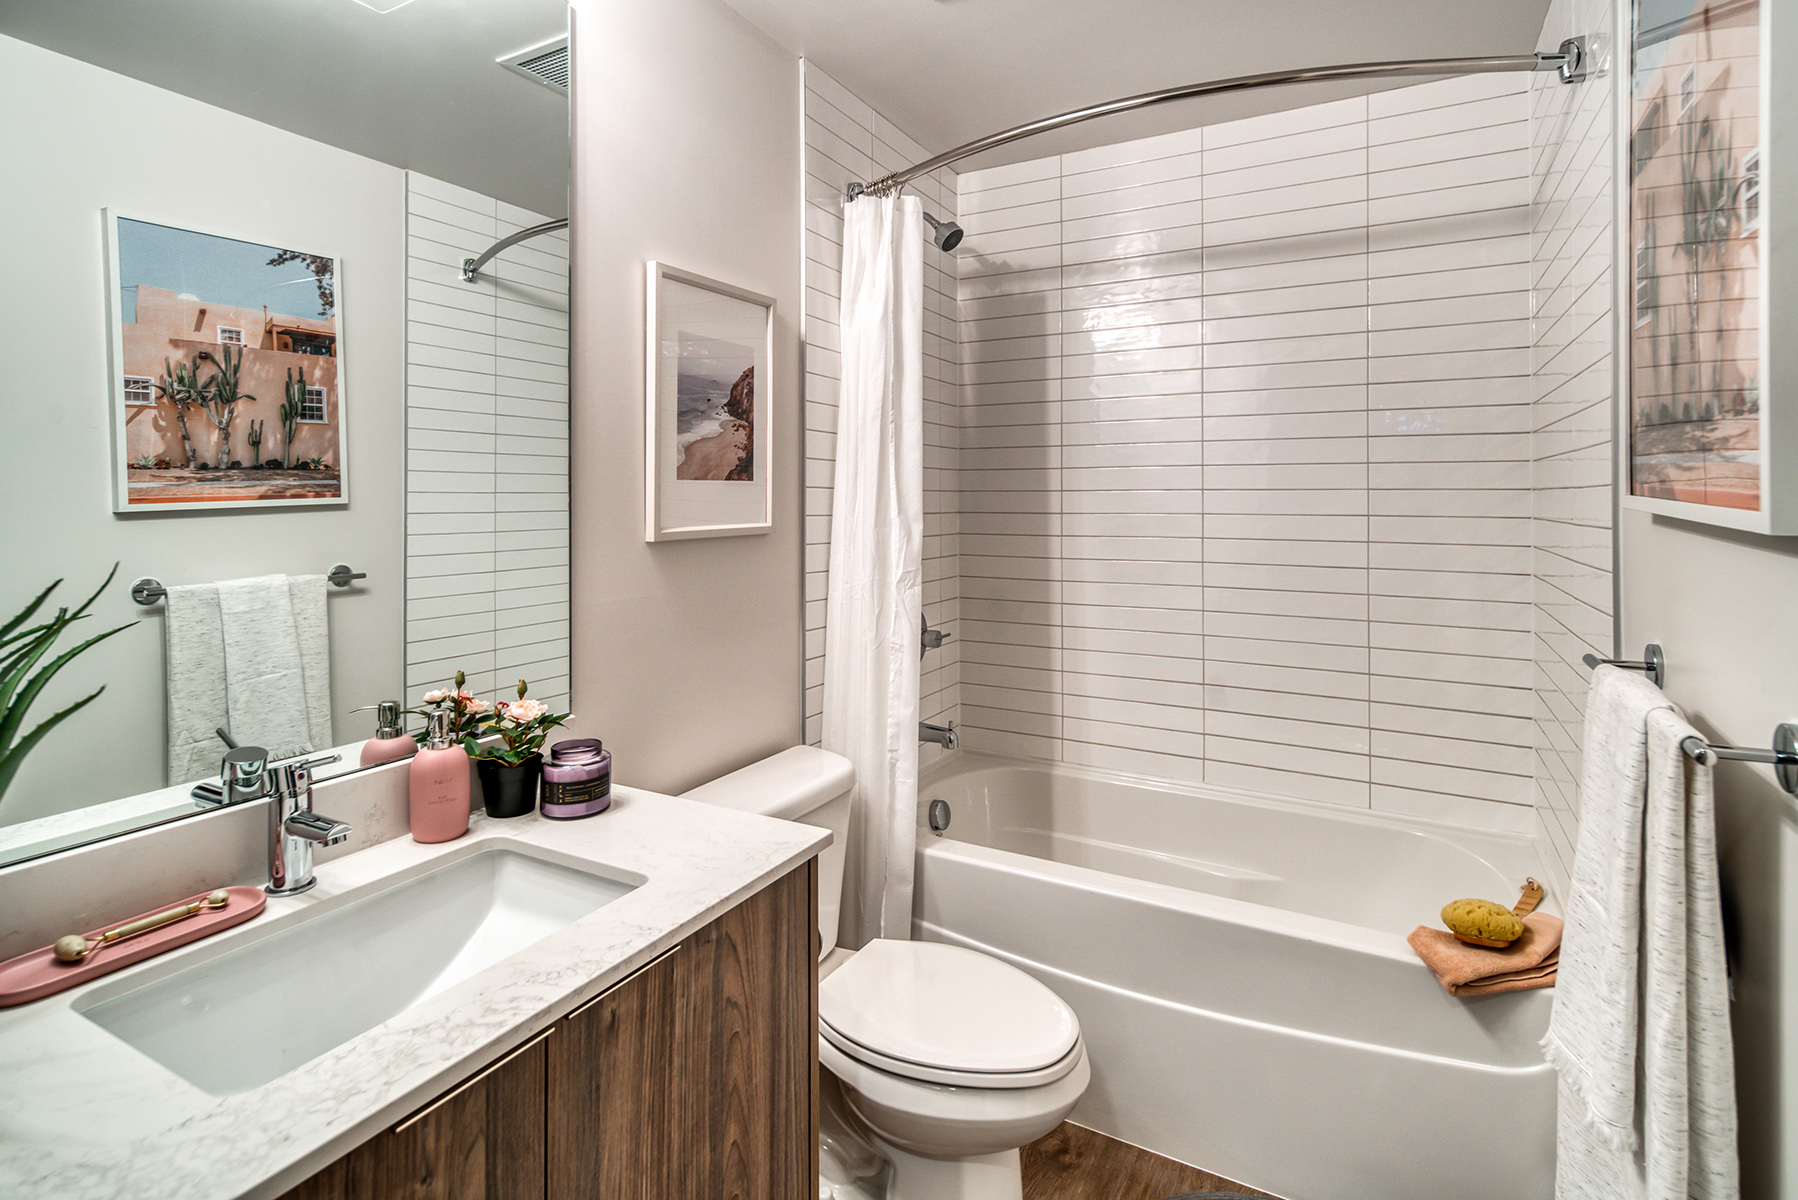 Full-Size Soaker Tub With Full Height Porcelain Wall Tiles